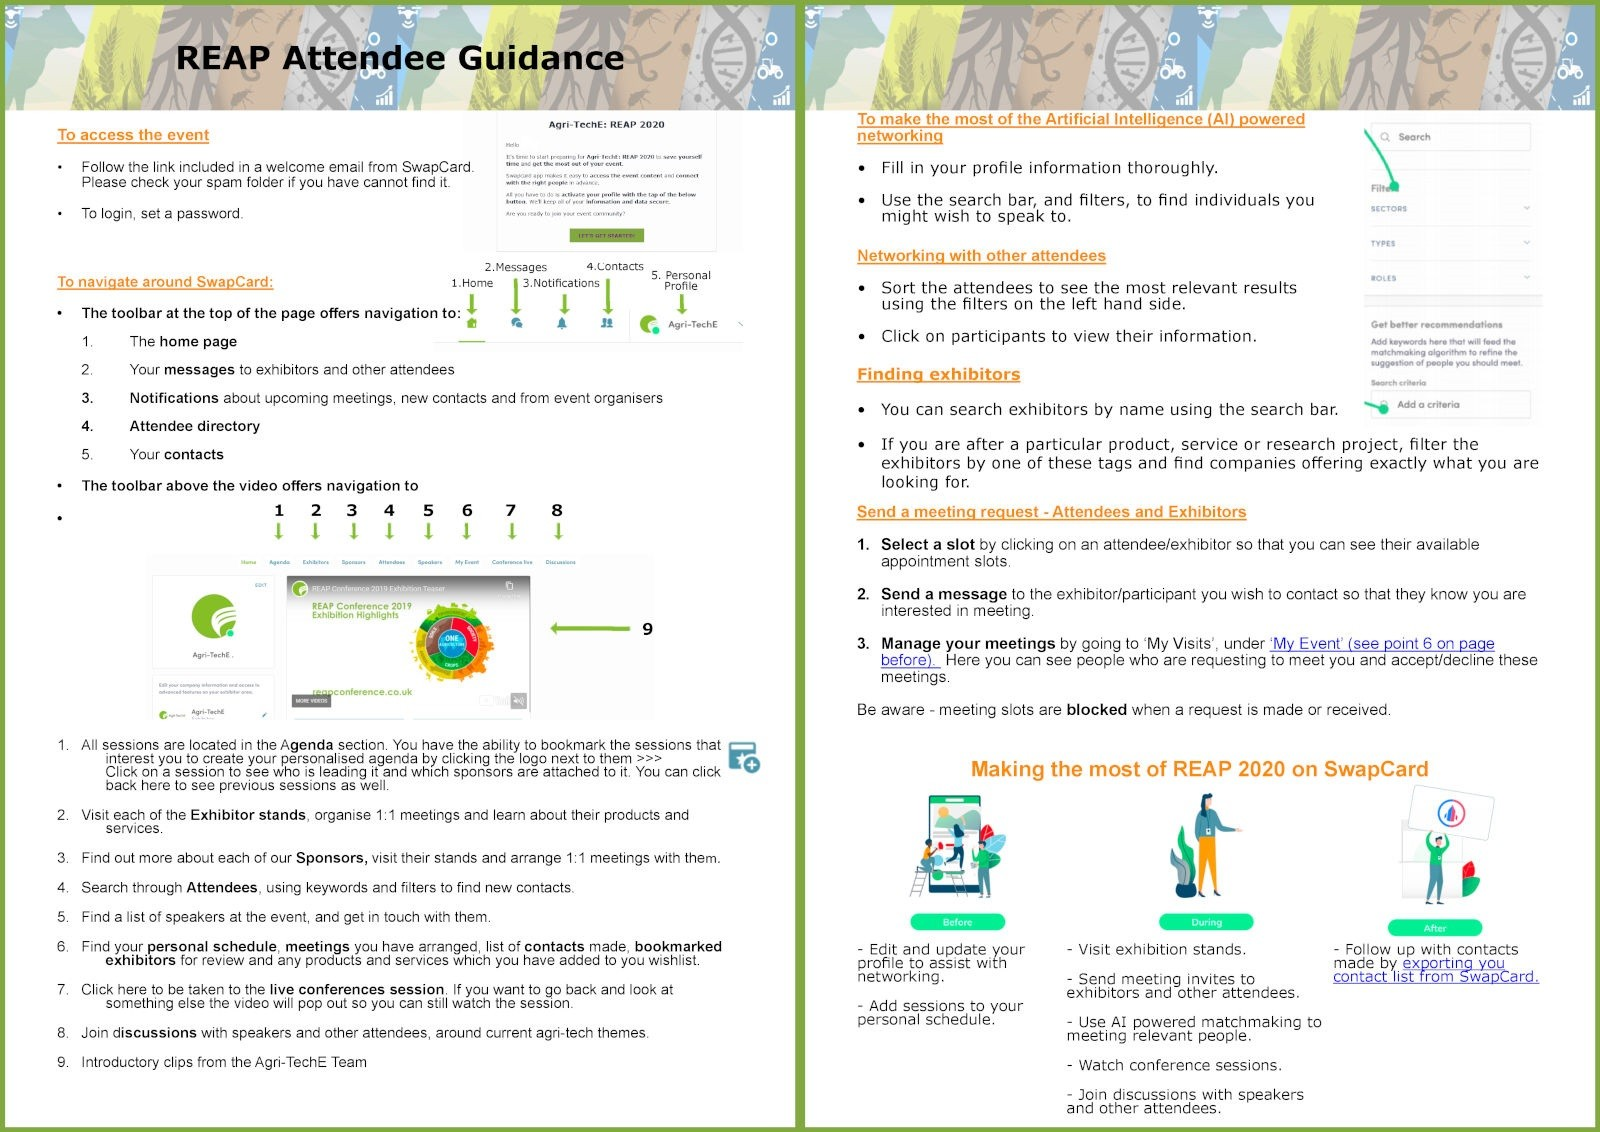 Attendee Guidance for Navigating Swapcard full